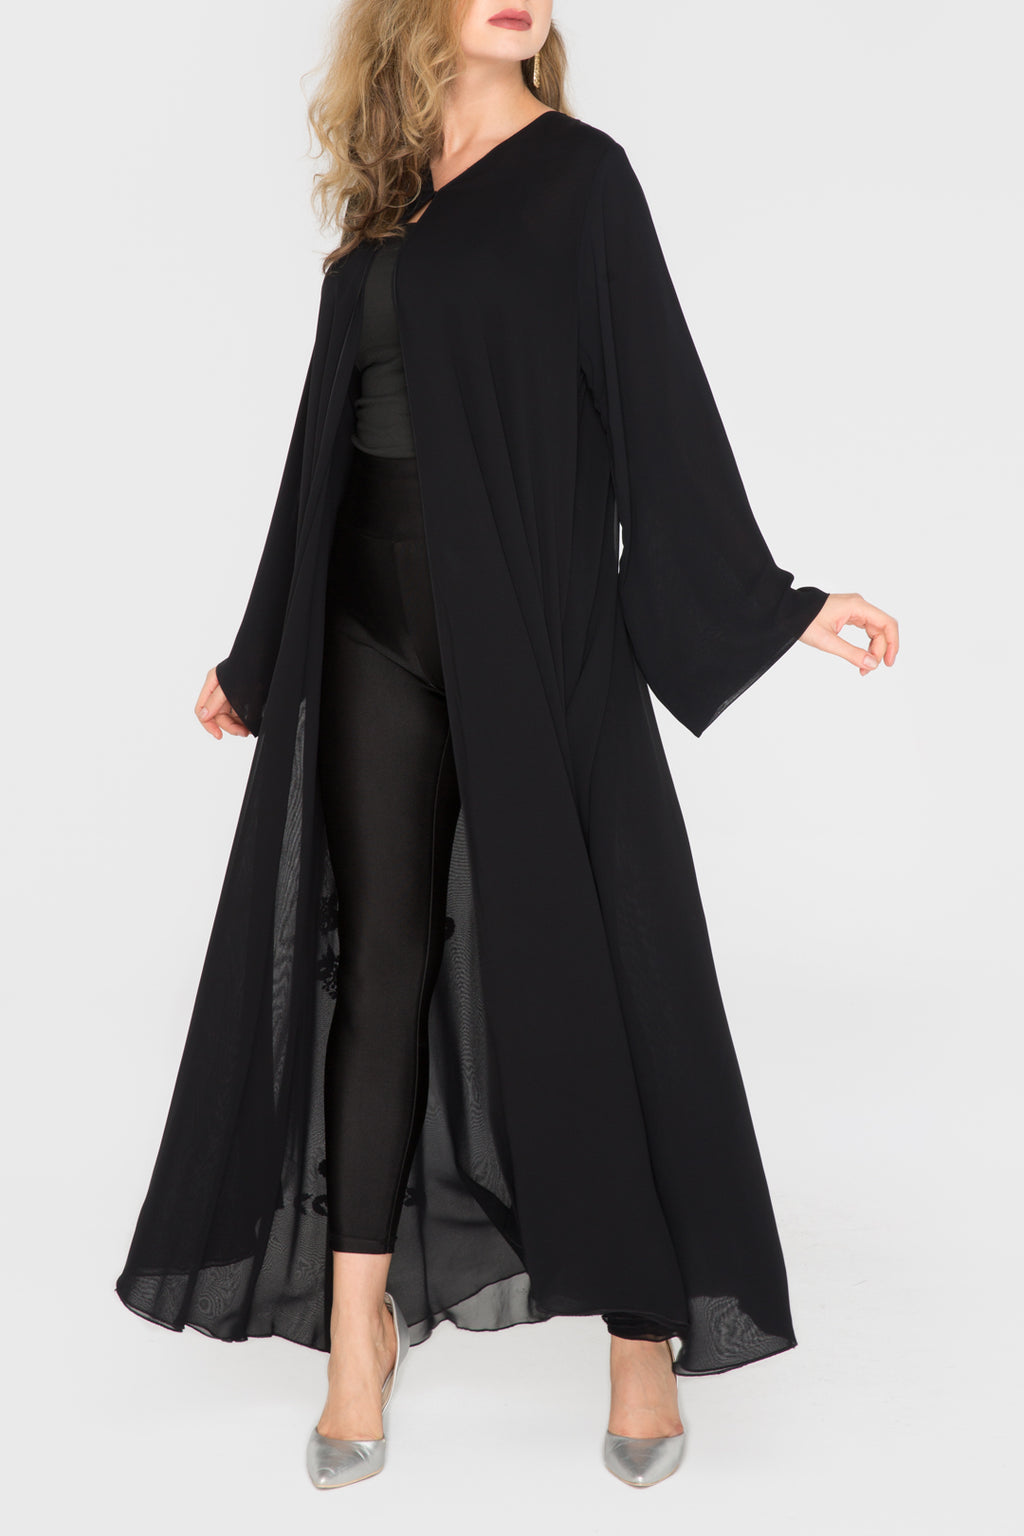 Double Chiffon with Floral Trim Abaya